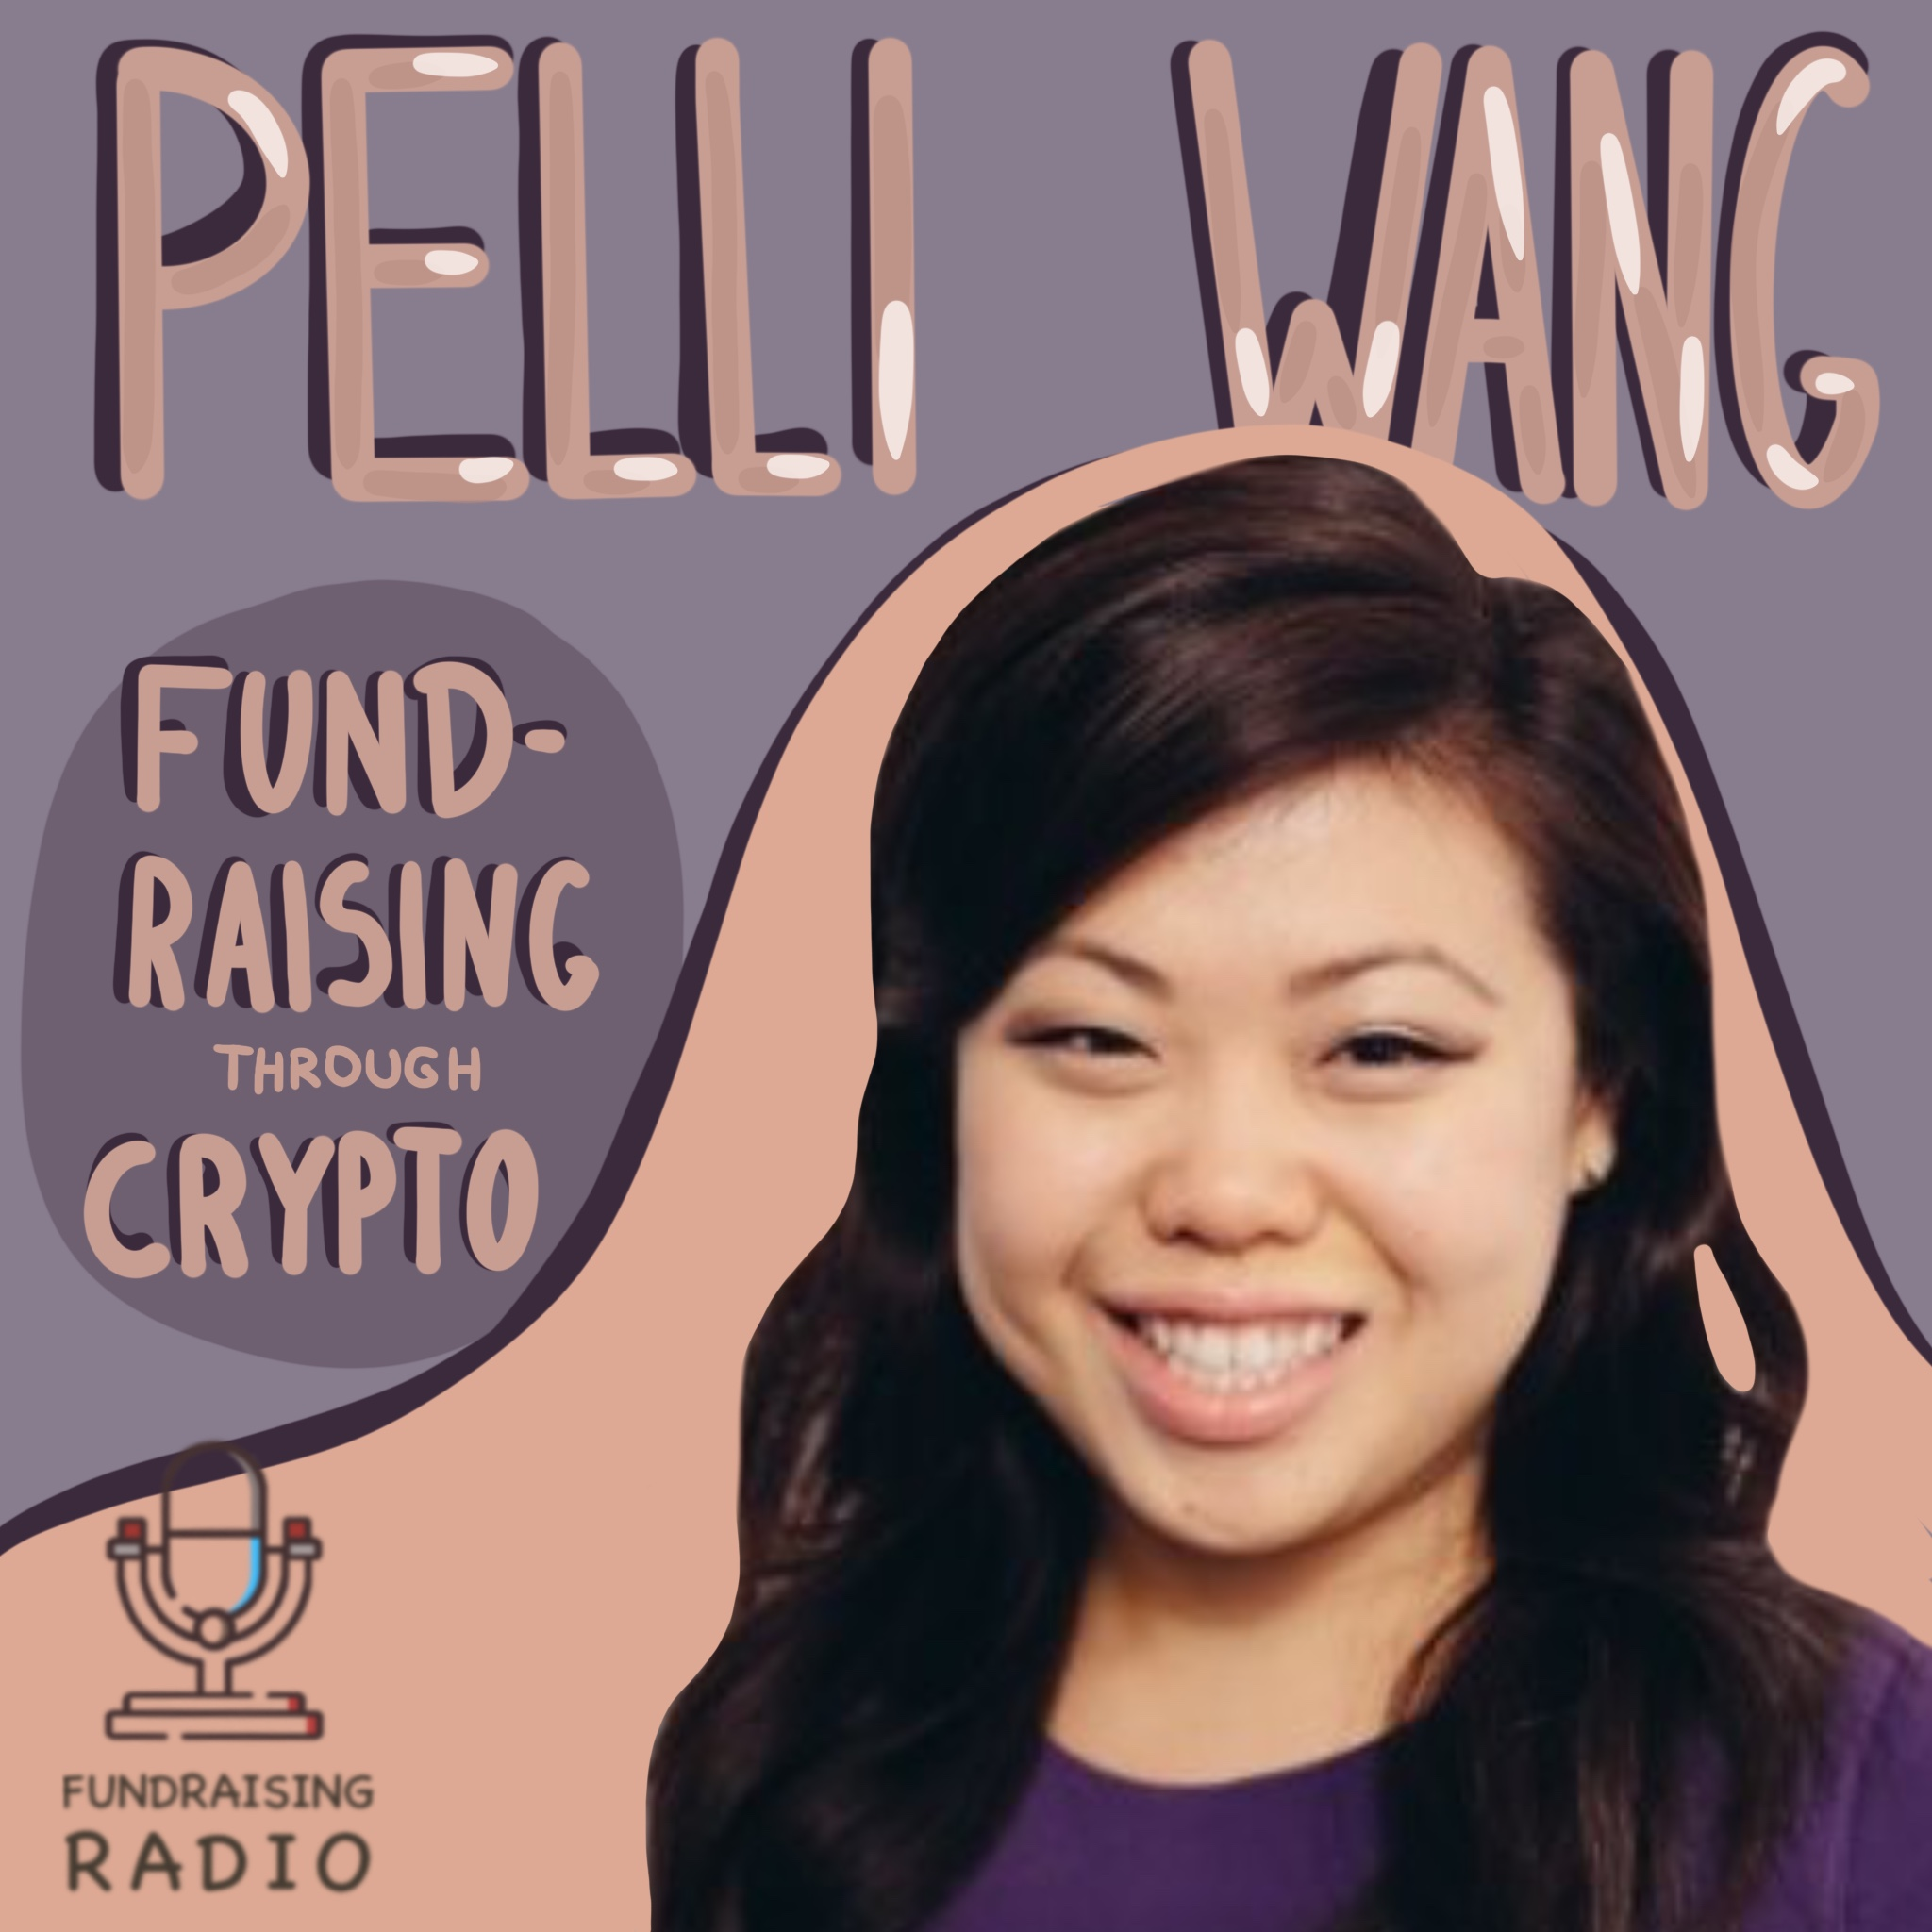 Fundraising through crypto - is it still viable? By Pelli Wang.